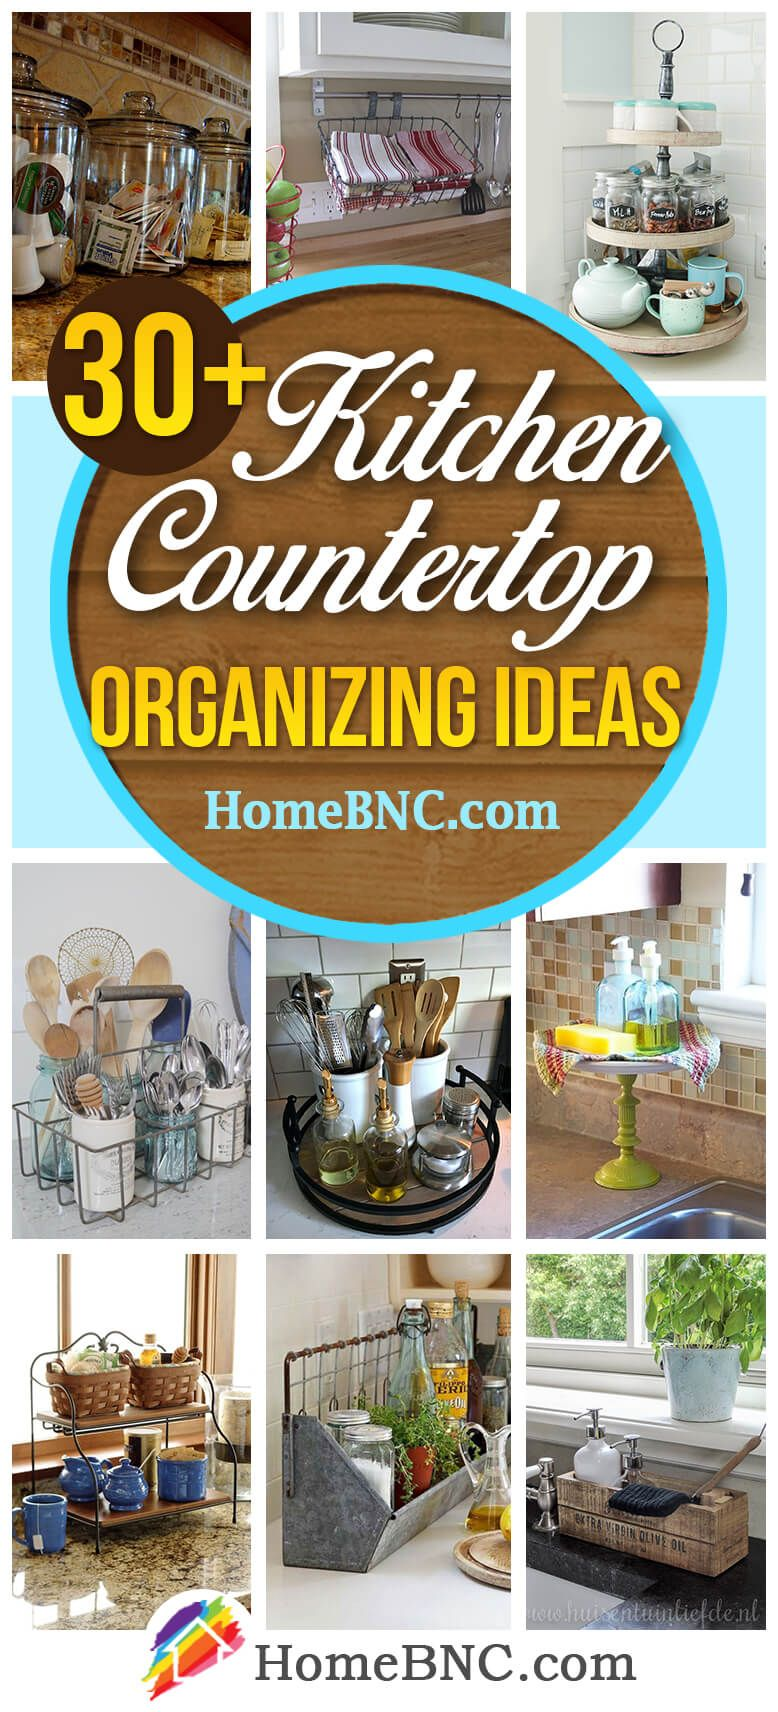 34 Inventive Kitchen Countertop Organizing Ideas To Keep Your Space